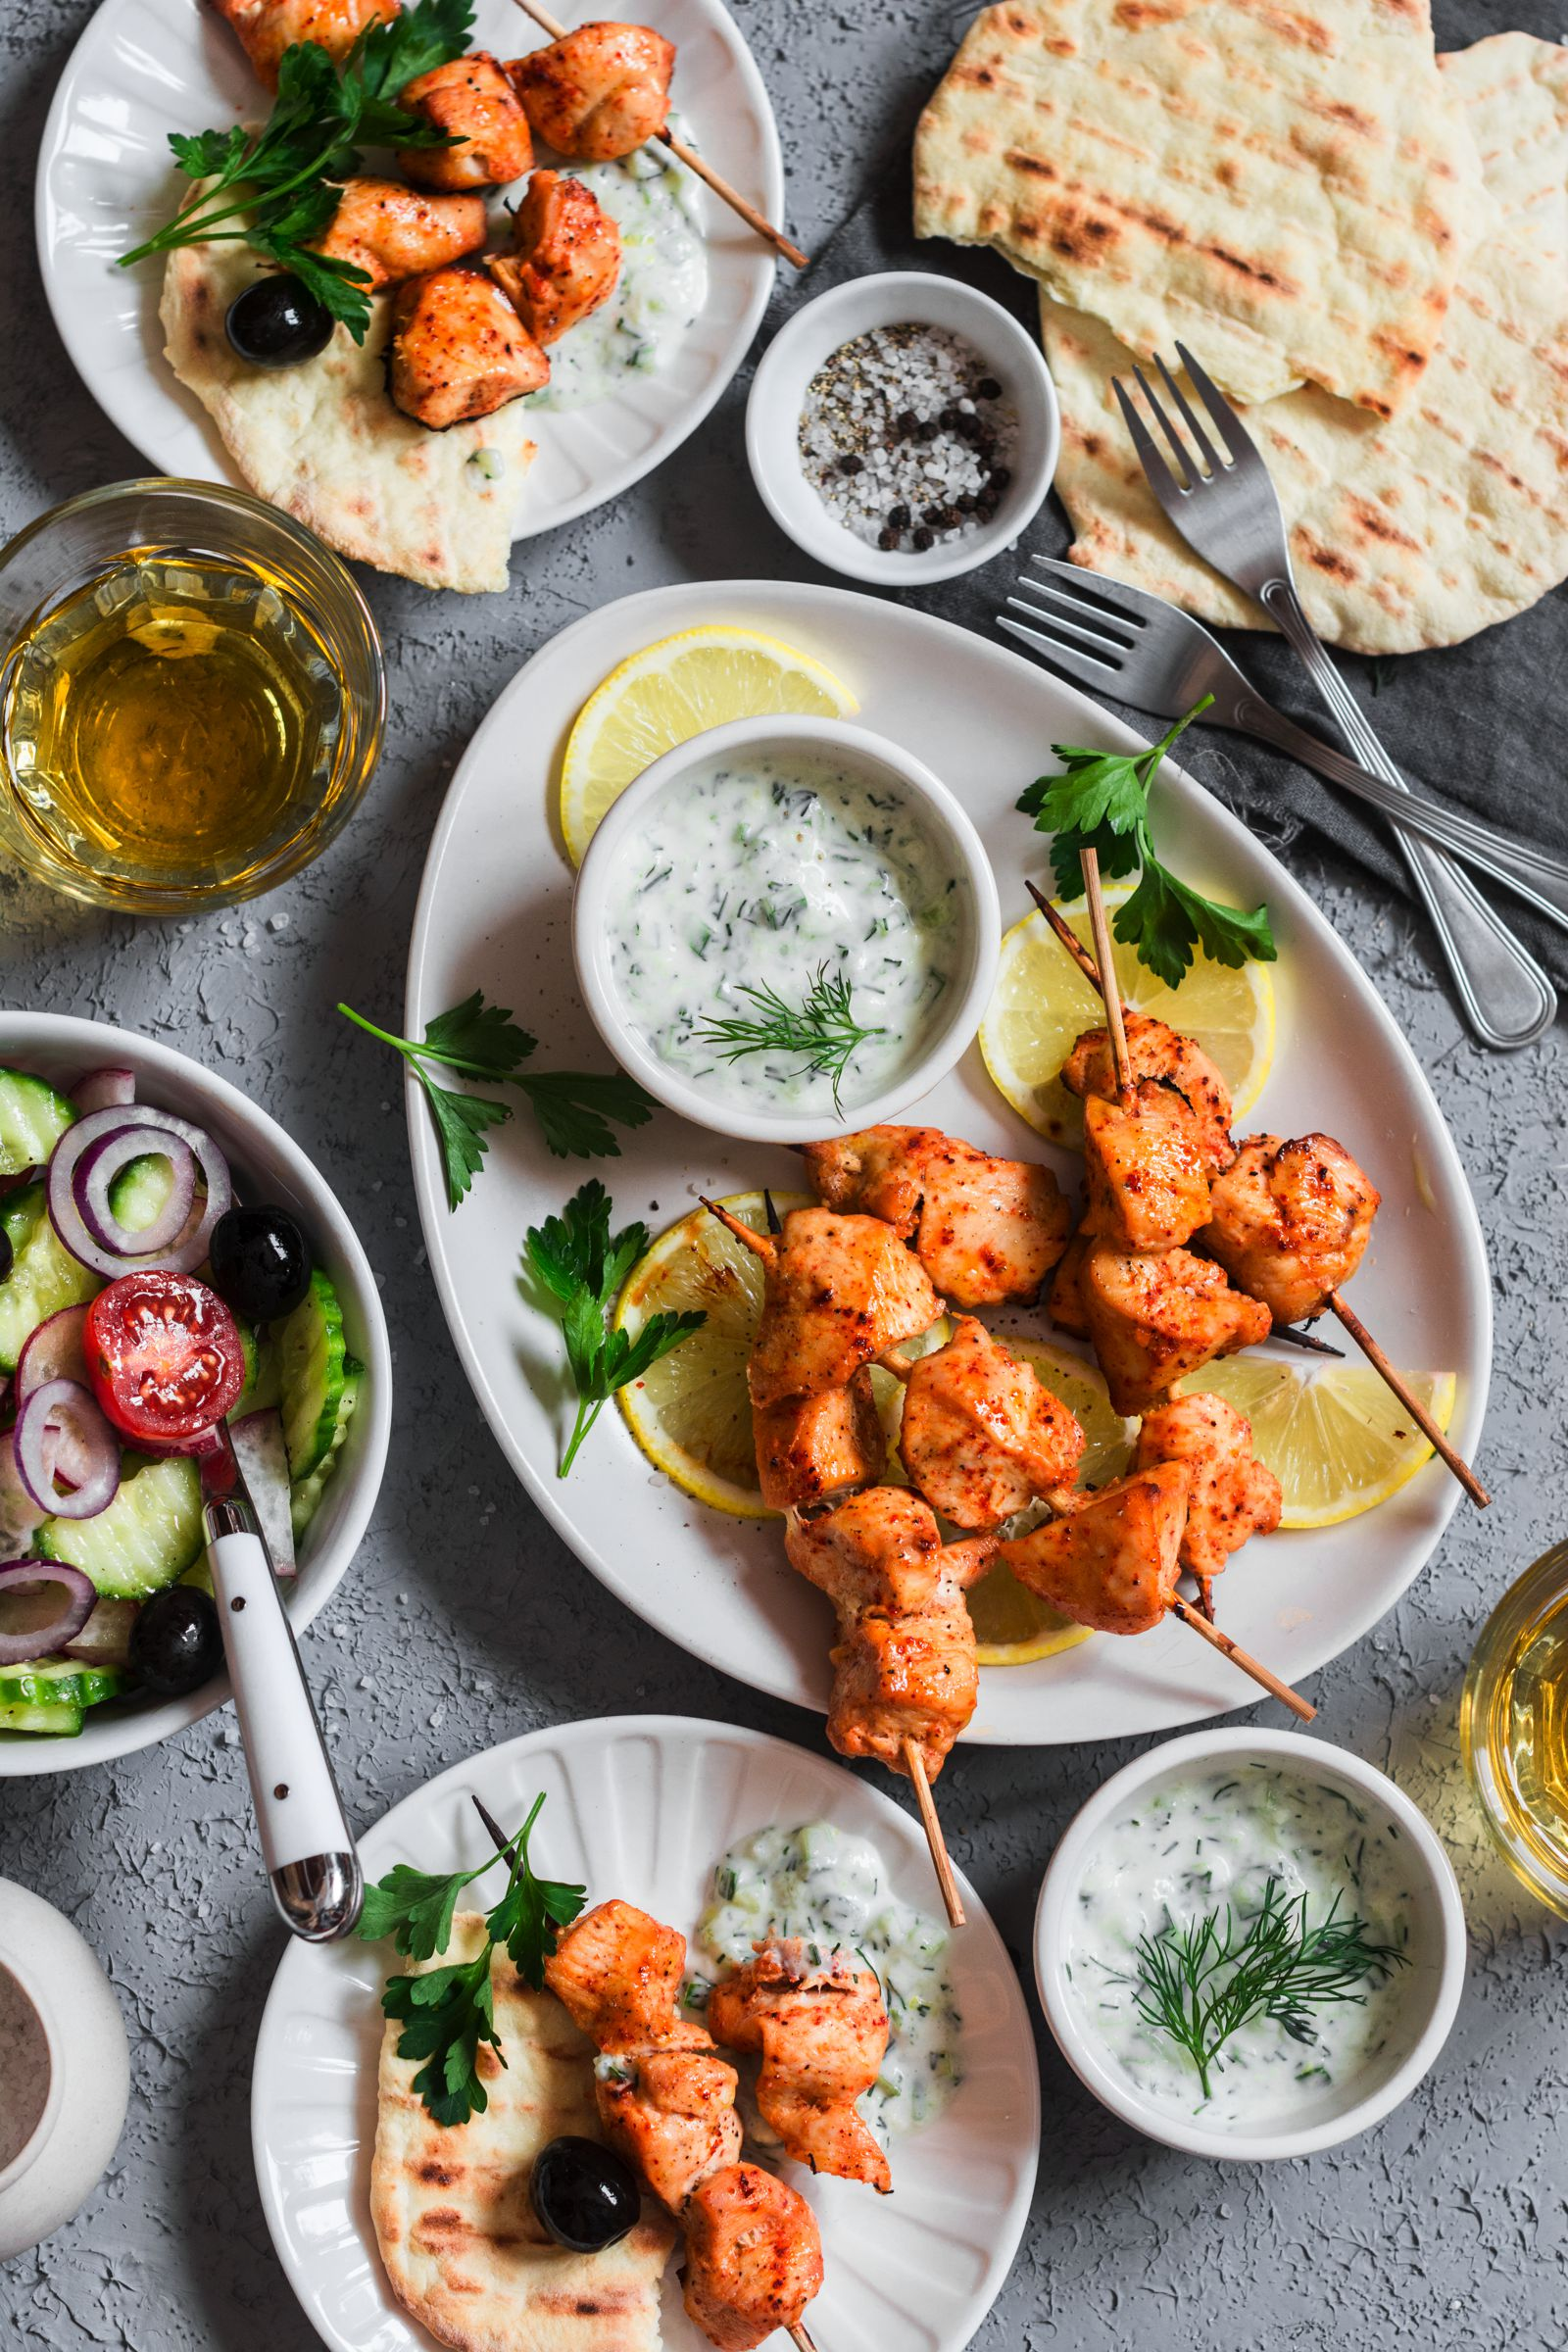 a look at the greek food and eating practices Greek food blogs you should follow: diane kochilas, my little expat kitchen, olive tomato, eat yourself greek and cooking economy by ft bletsas  especially for a look at the hip, modern take.